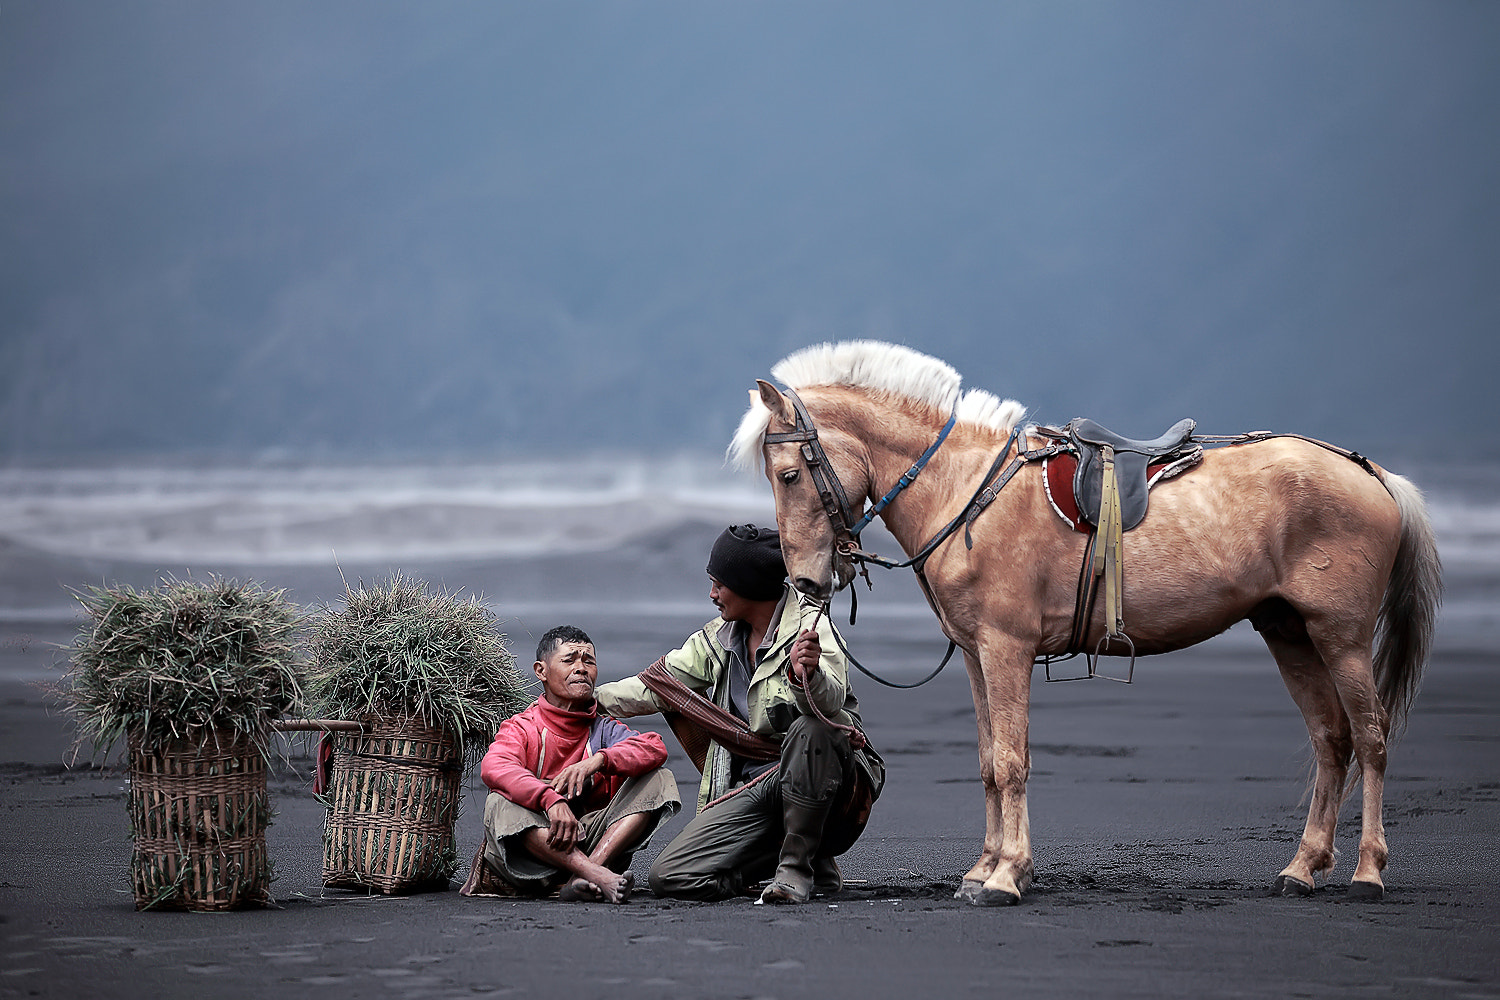 Photograph Exhausted by Tri Wahyono on 500px